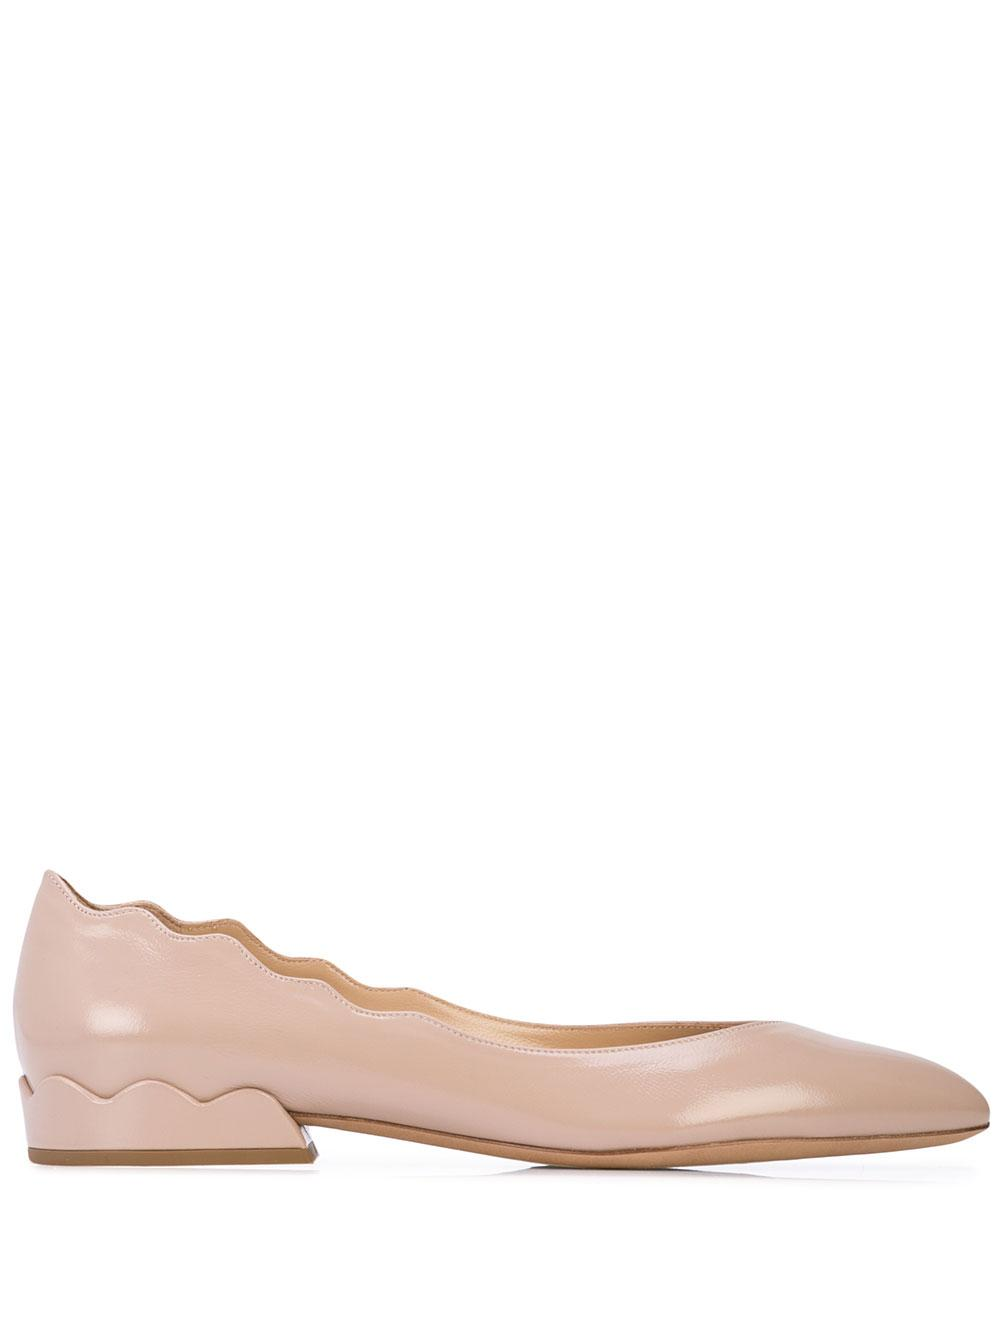 Laurena Semi Shiny Scalloped Flat